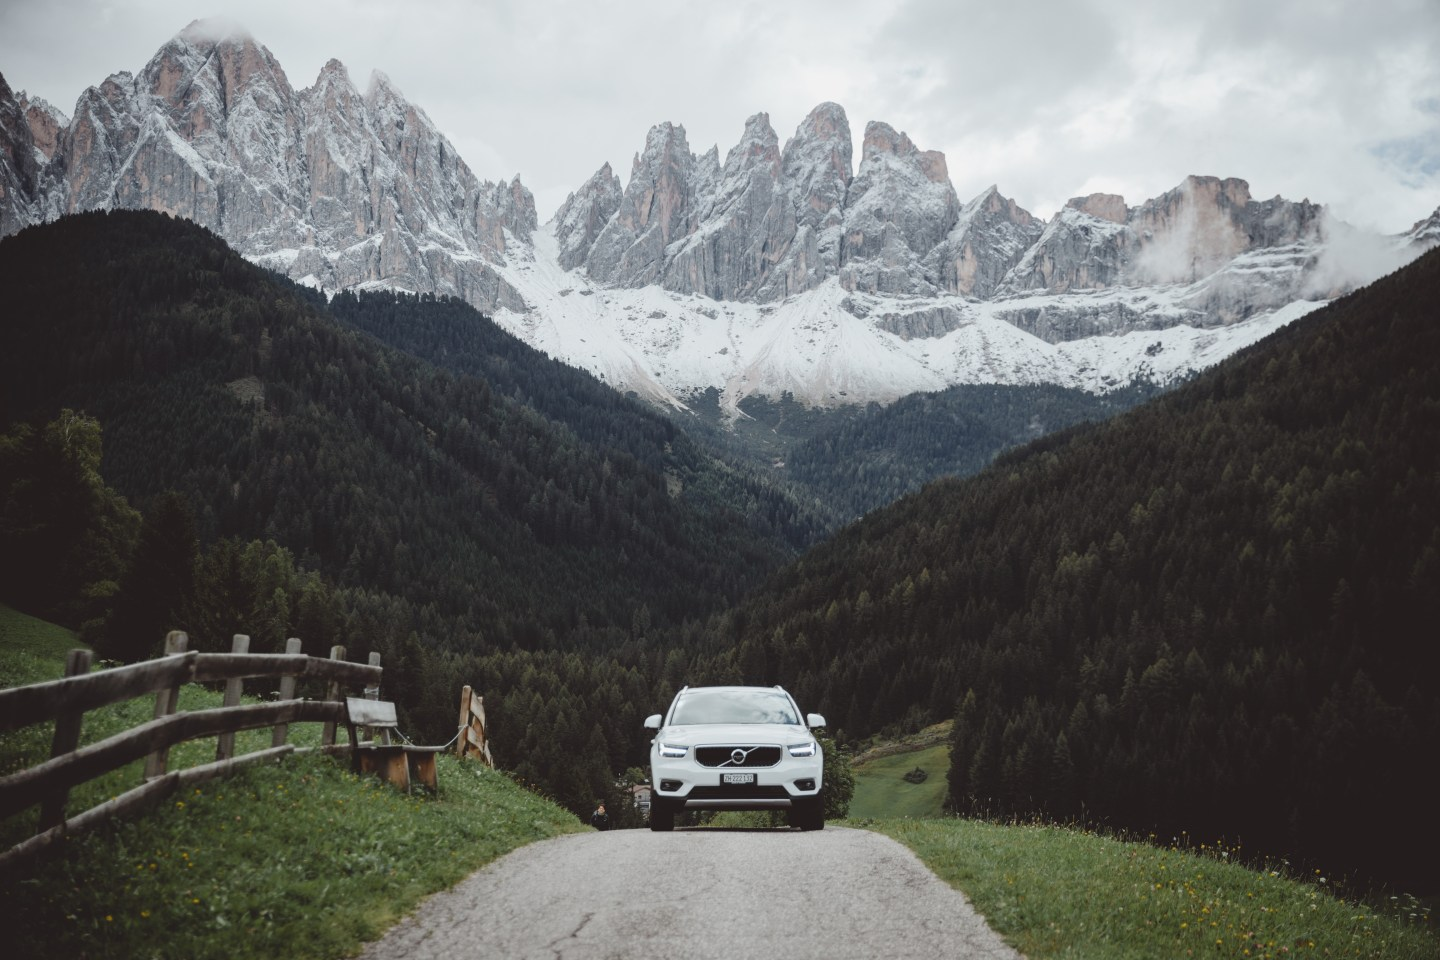 My 7 Day Roadtrip Through The Dolomites - Allie M. Taylor